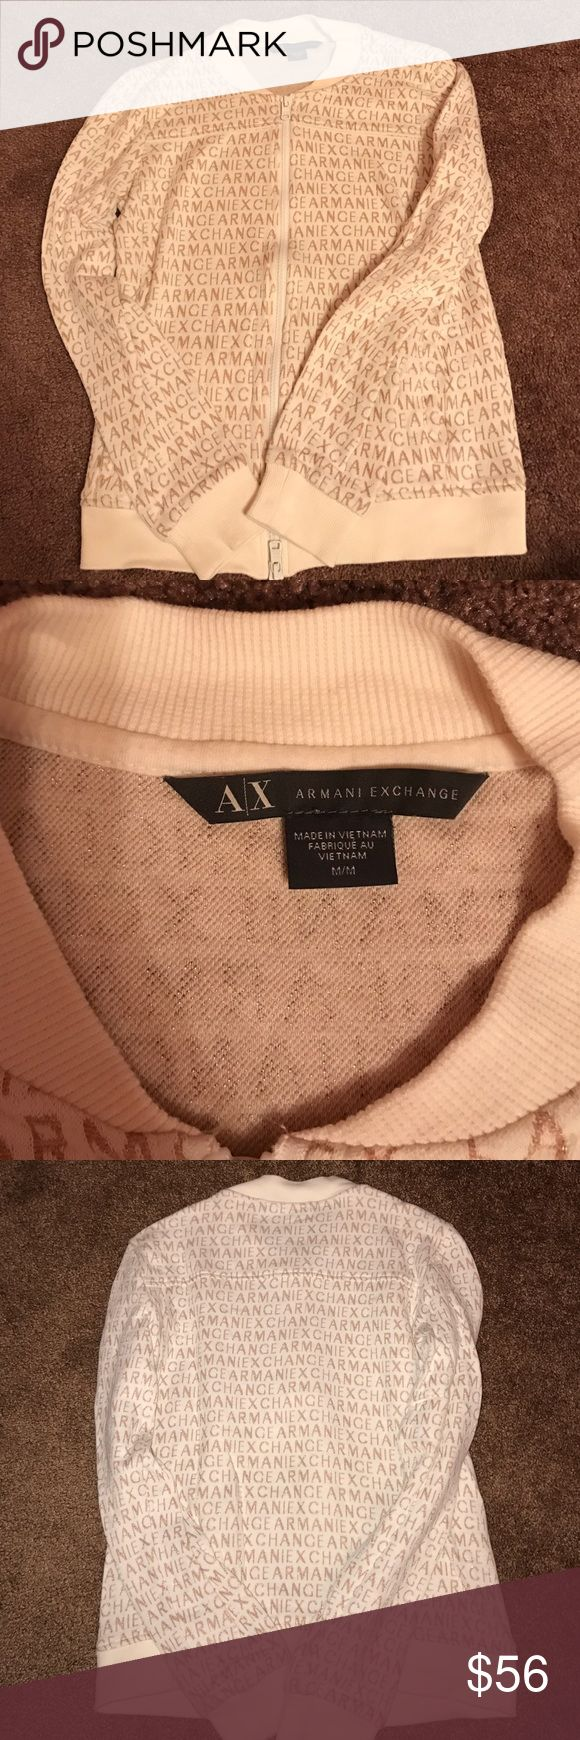 Armani exchange sweatshirt Great condition Armani exchange sweatshirt. Does not have a hood. Worn once! The sweatshirt is a creme color with Armani exchange written all over it in a brownish/gold color! It states it's a size medium but fits more like an XS/Small. No trades. Any questions please ask ! A/X Armani Exchange Tops Sweatshirts & Hoodies